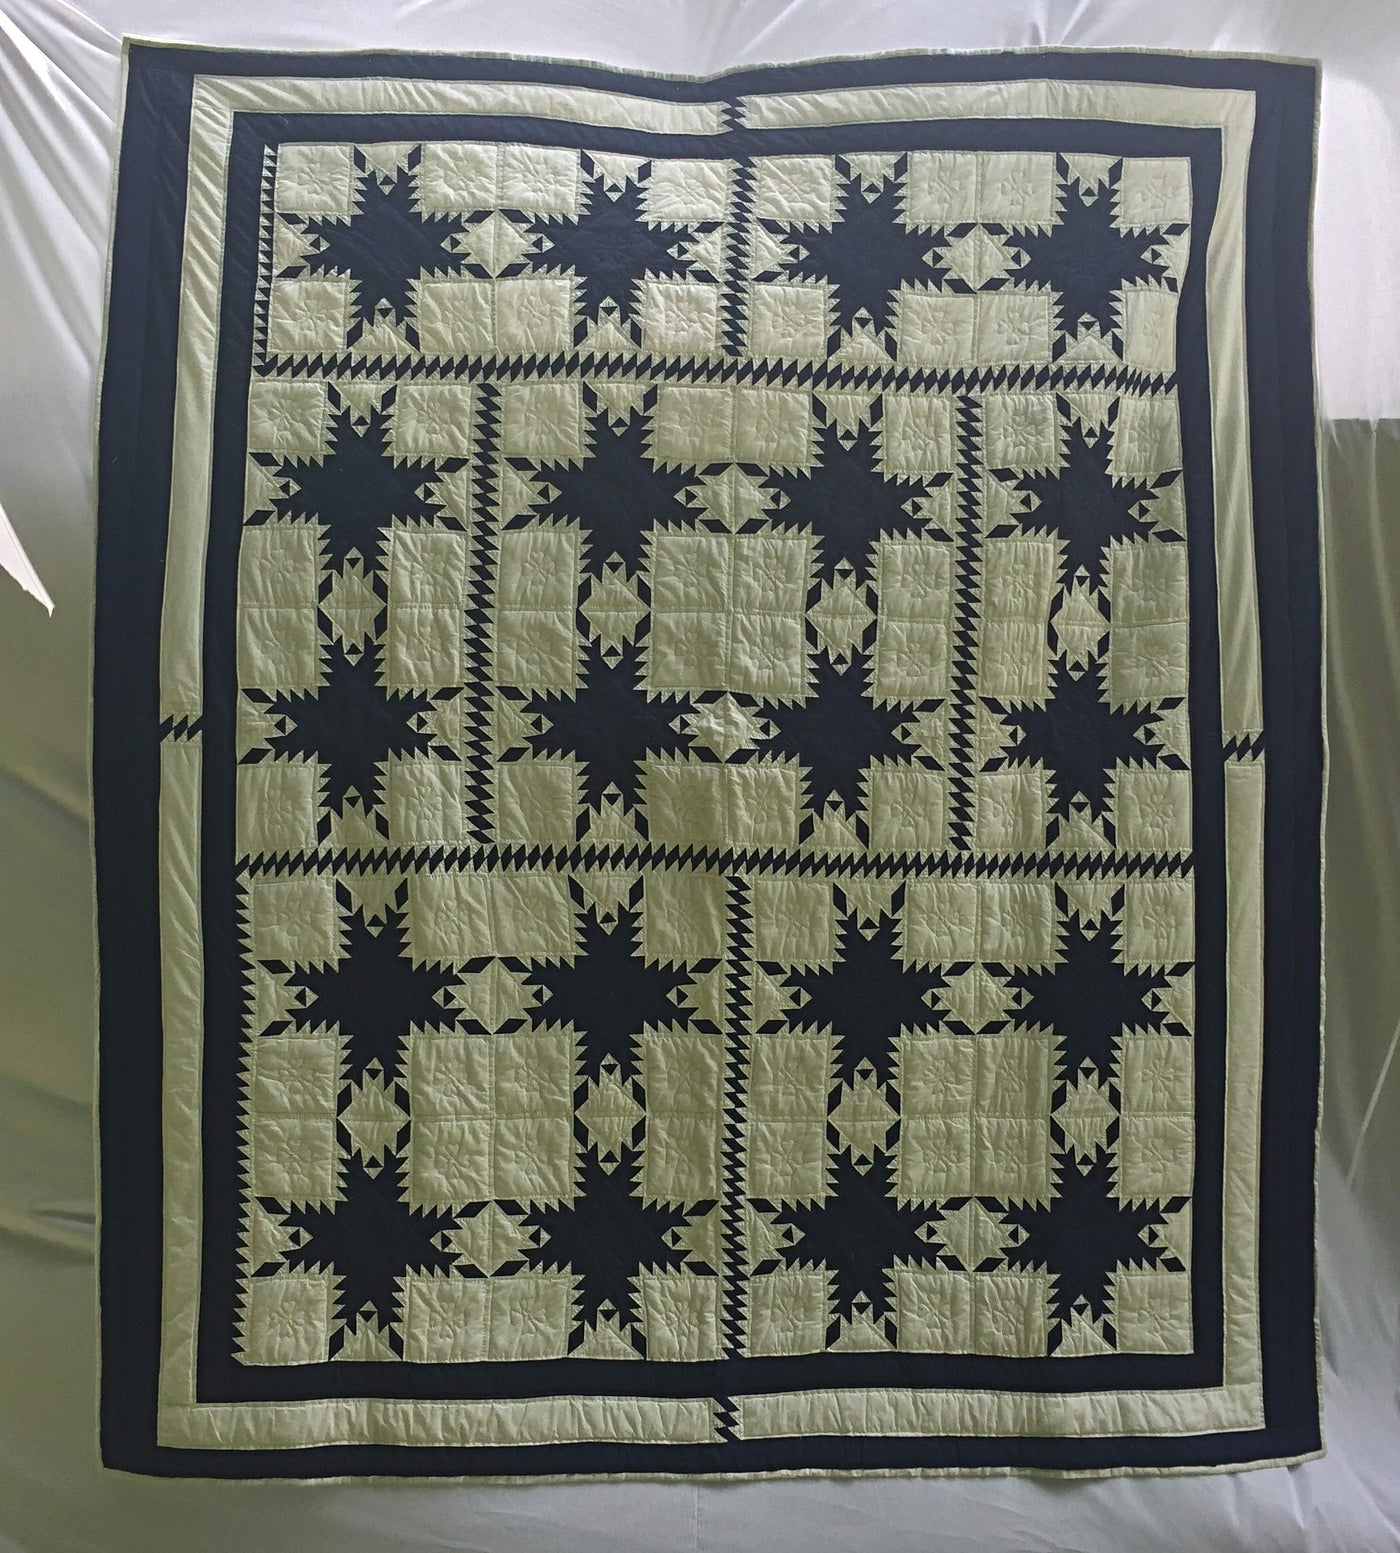 Merry Mariner S Heirloom Quilt In Navy And White Feathered Star